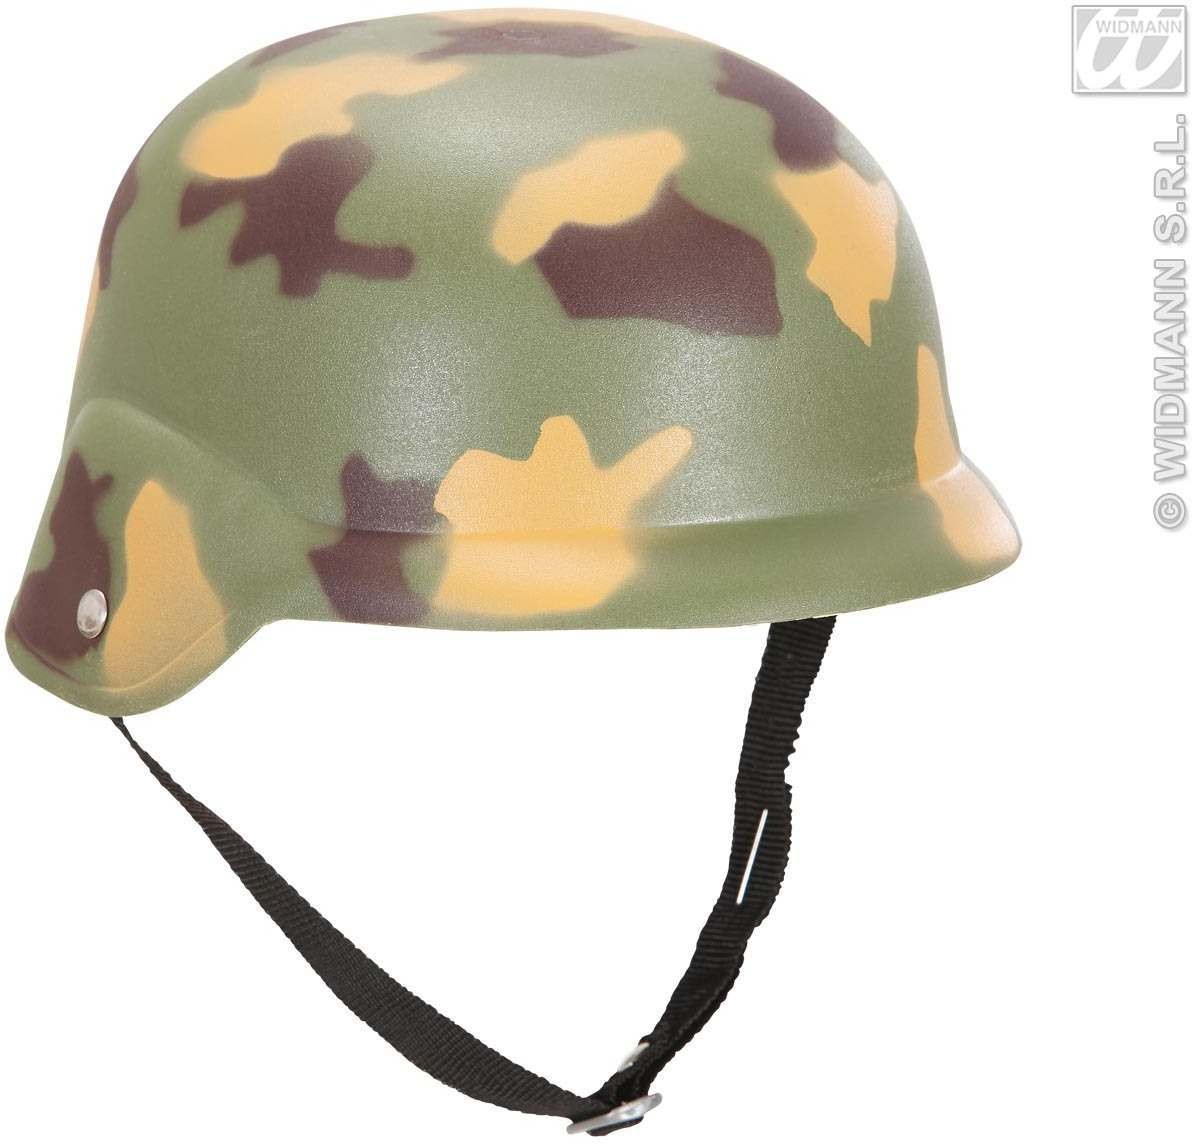 Camouflage Helmet - Fancy Dress (Army)